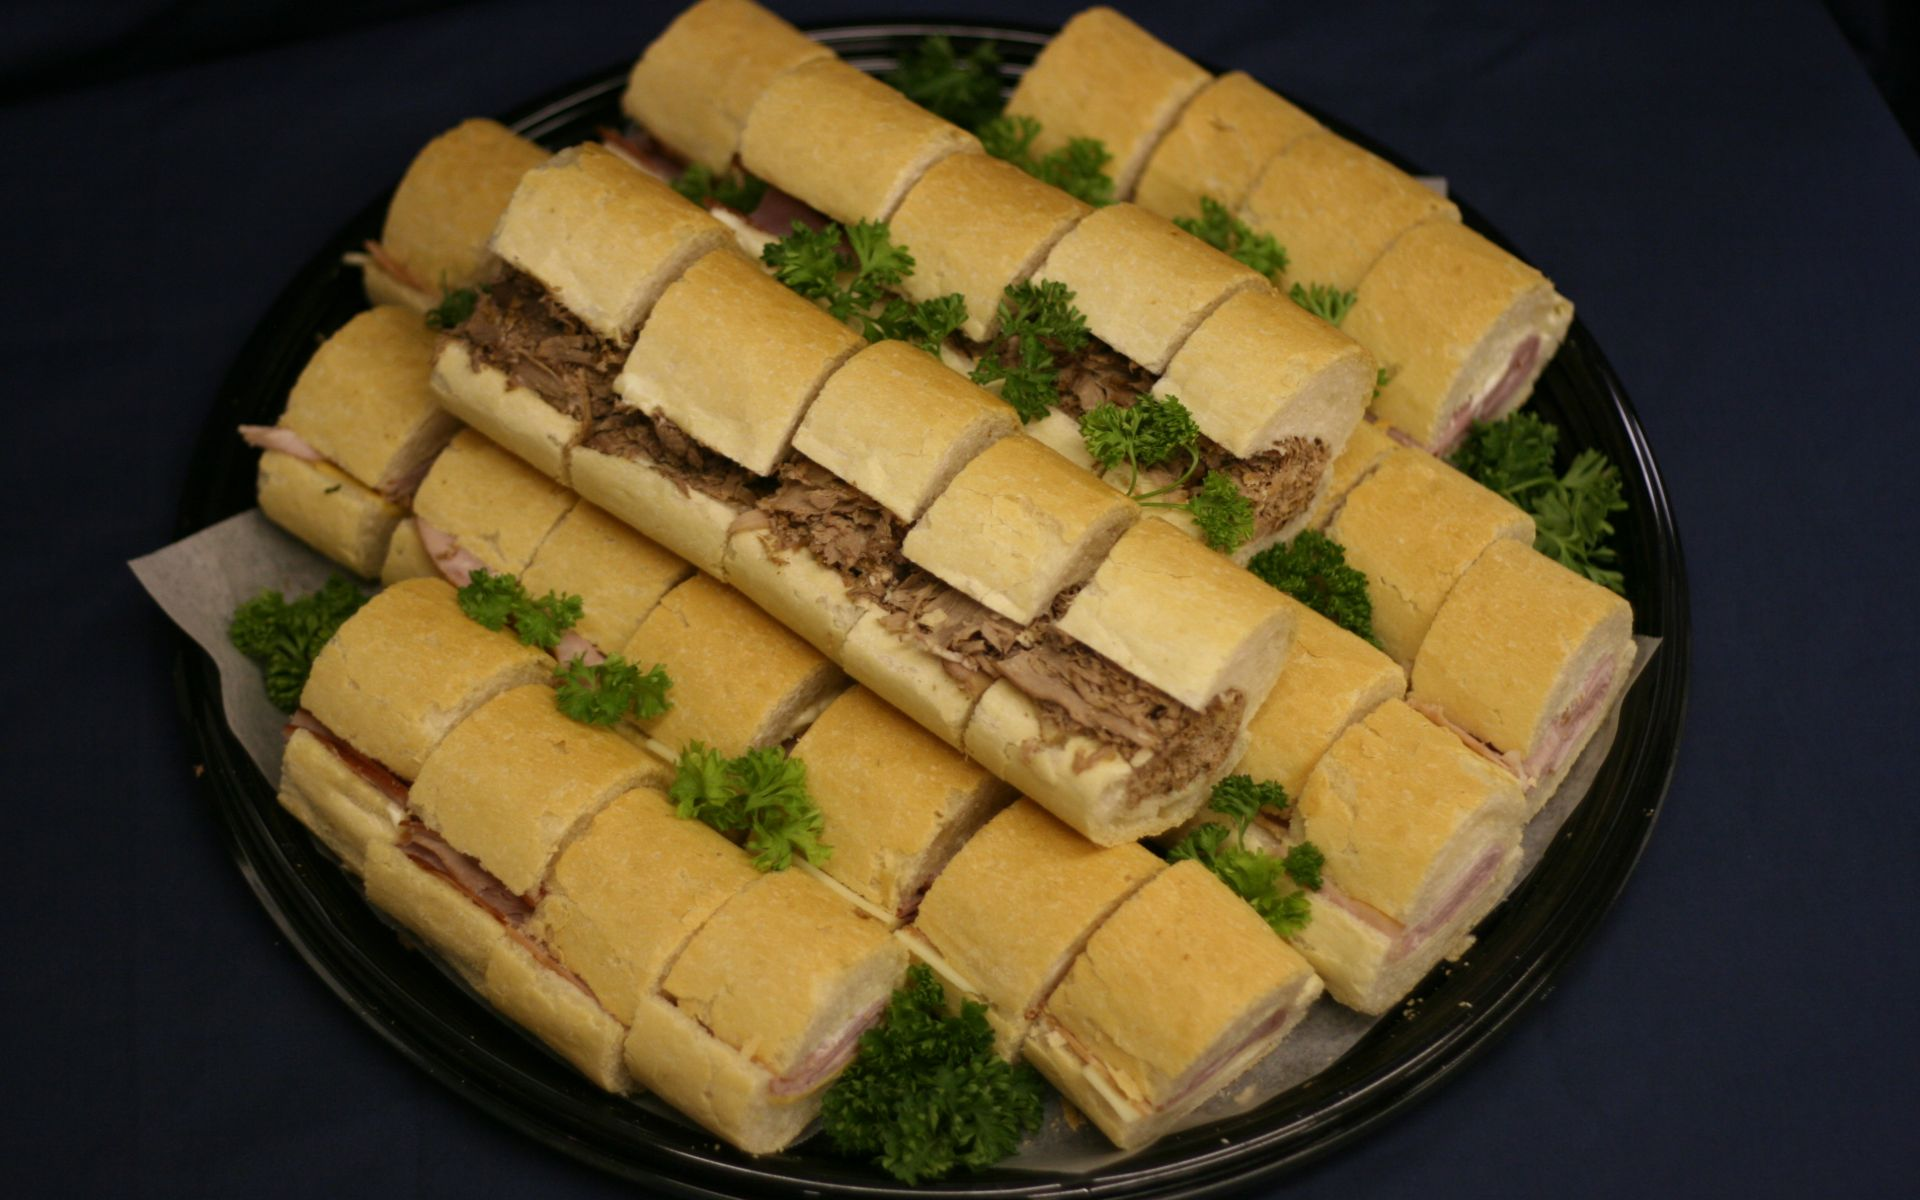 Sliced sandwiches stacked on a plastic tray